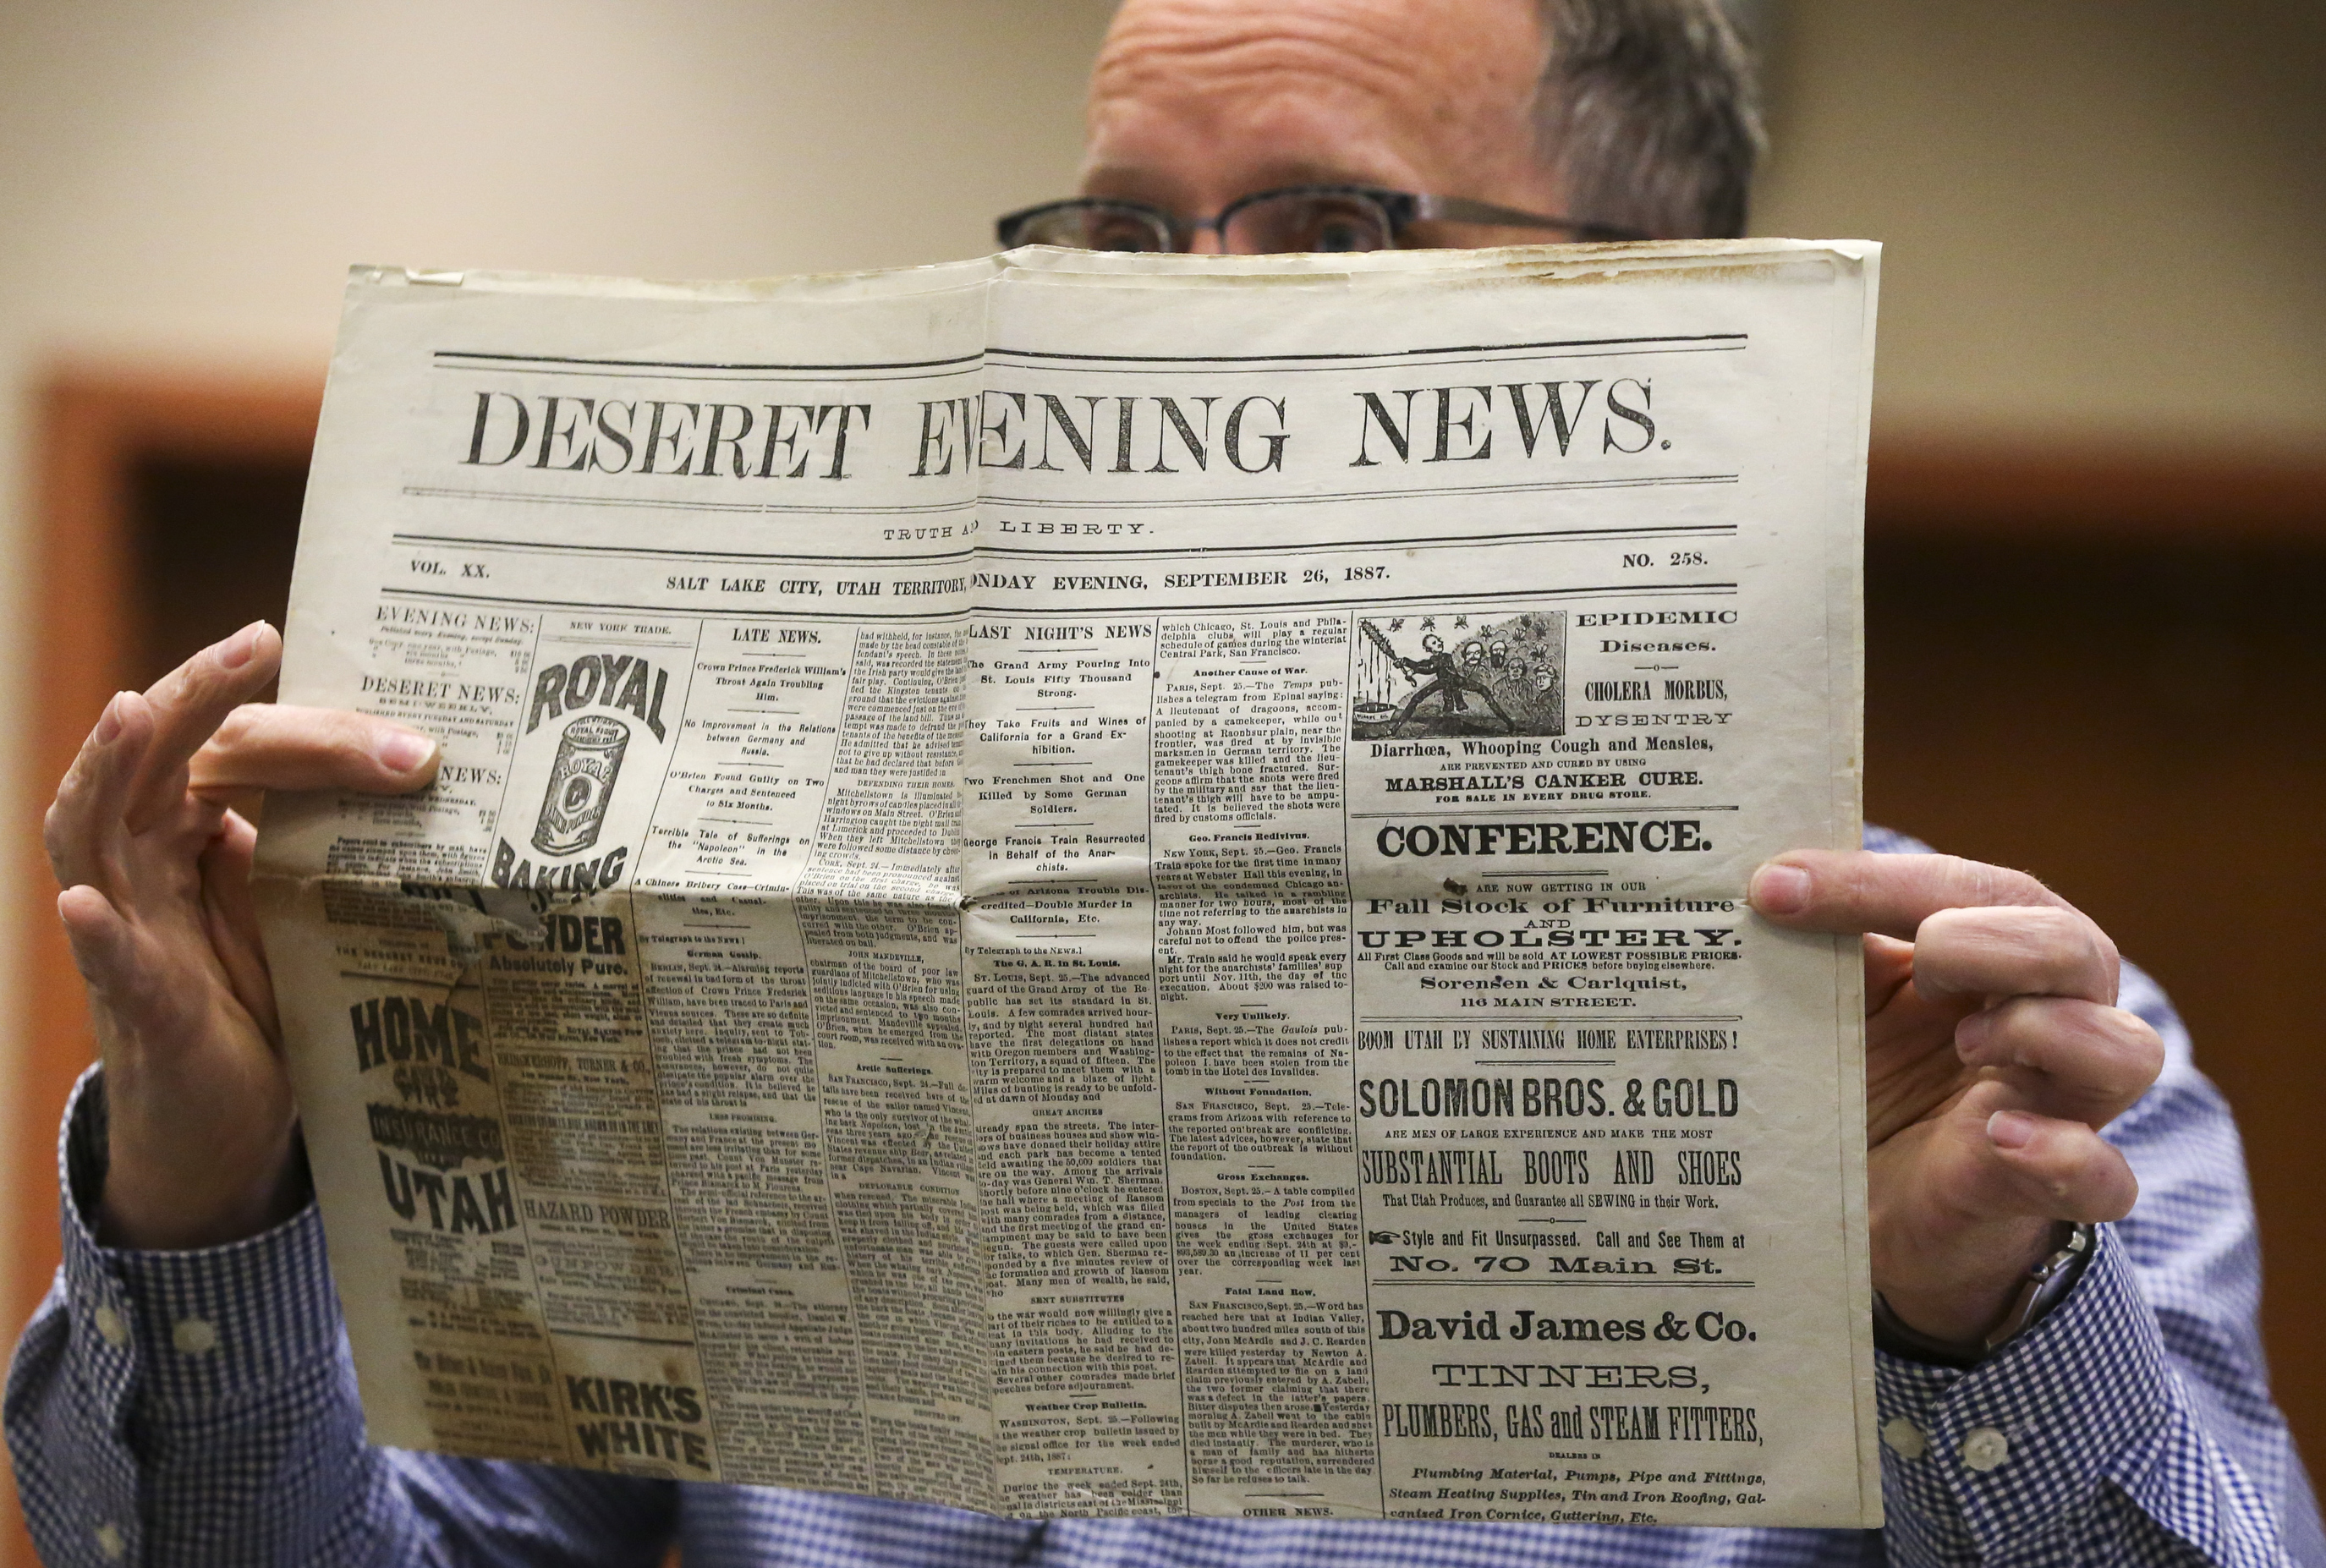 Alan Barnett, a local government archivist with the Utah Division of Archives and Records Service, displays a copy of the Deseret Evening News as he unboxes an 1887 time capsule at the division's office in Salt Lake City on Wednesday, Oct. 16, 2019. The time capsule was discovered in the cornerstone of the Ogden Central Junior High School when it was torn down in the early 1960s. At the time, the metal box was cut open to reveal its contents, which were then returned to the box and put in storage at the Ogden School District offices. The time capsule and its contents were eventually sent to the Utah State Archives and Record Services for permanent preservation. The time capsule was reopened in celebration of American Archives Month.